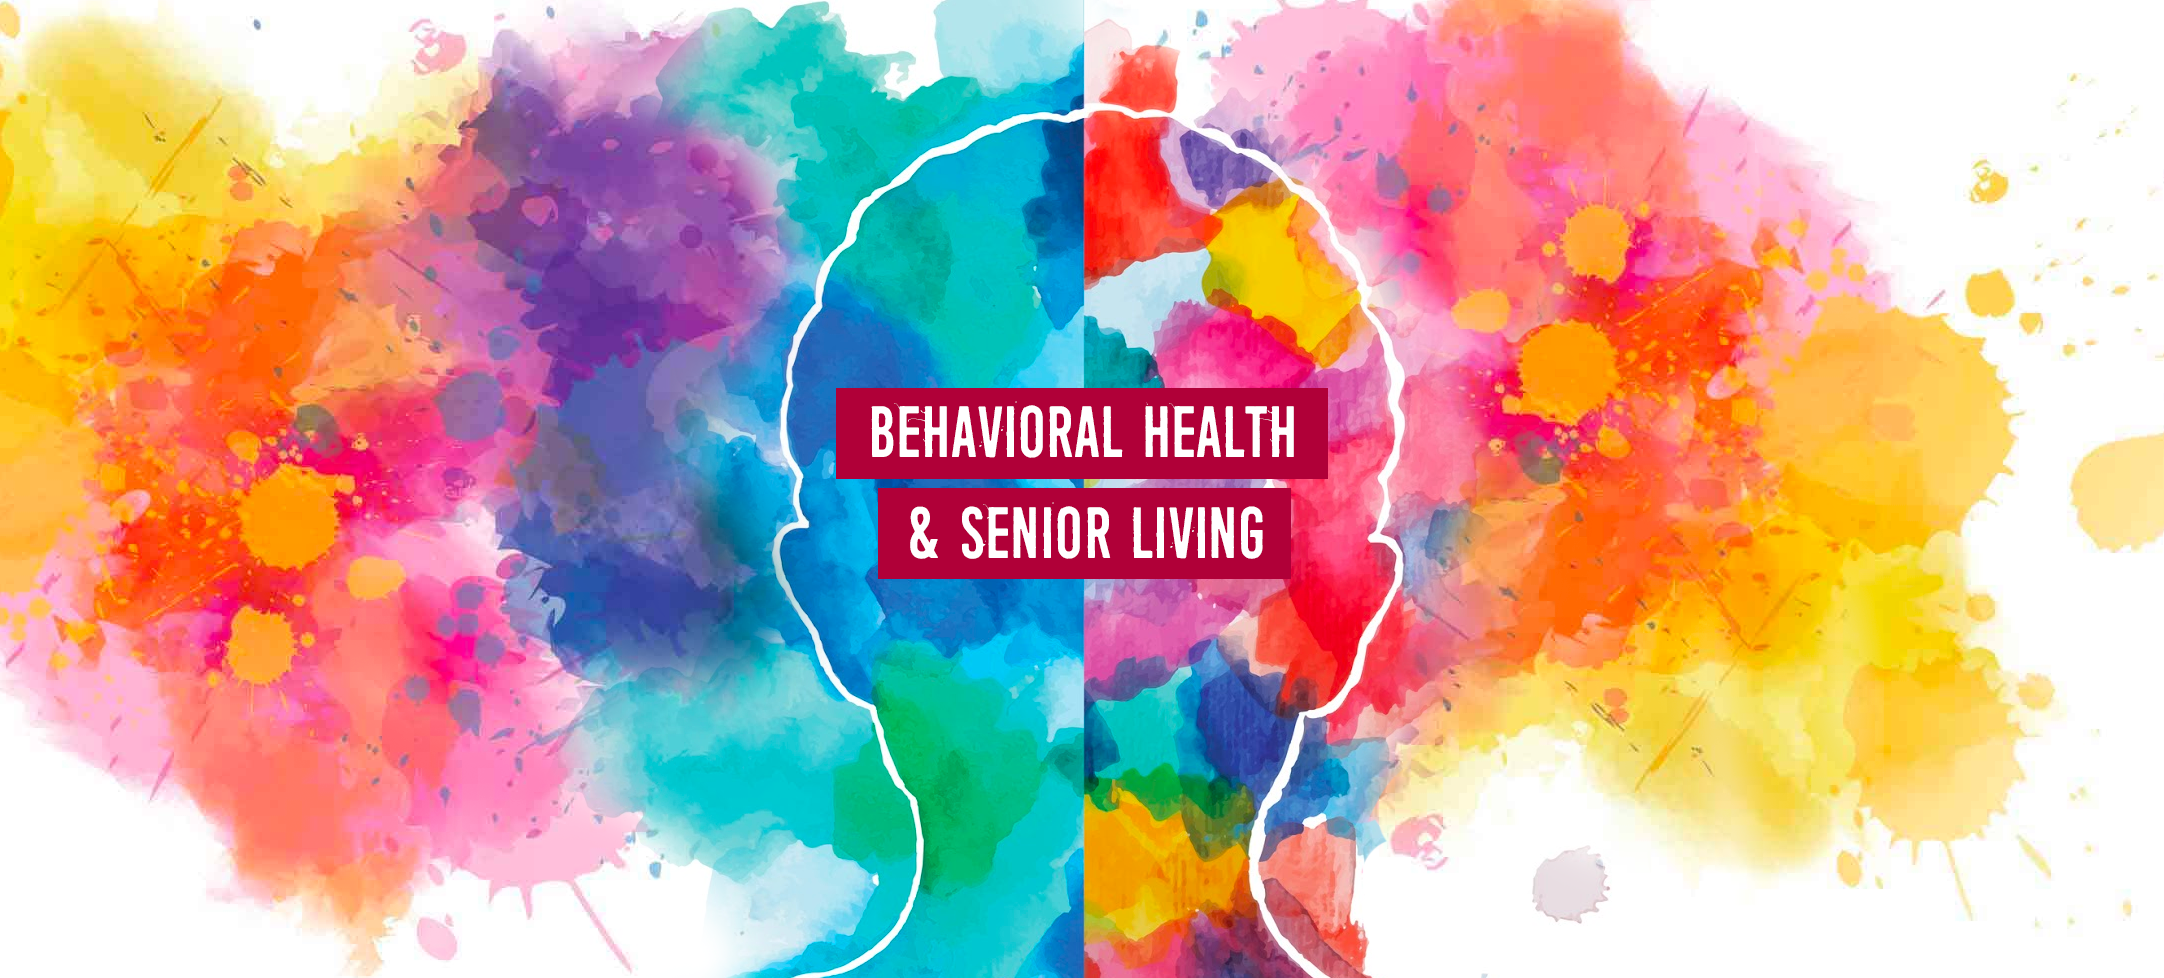 Can-Senior-Living-Handle-The-Rising-Tide-of-Behavioral-Health-Diagnoses